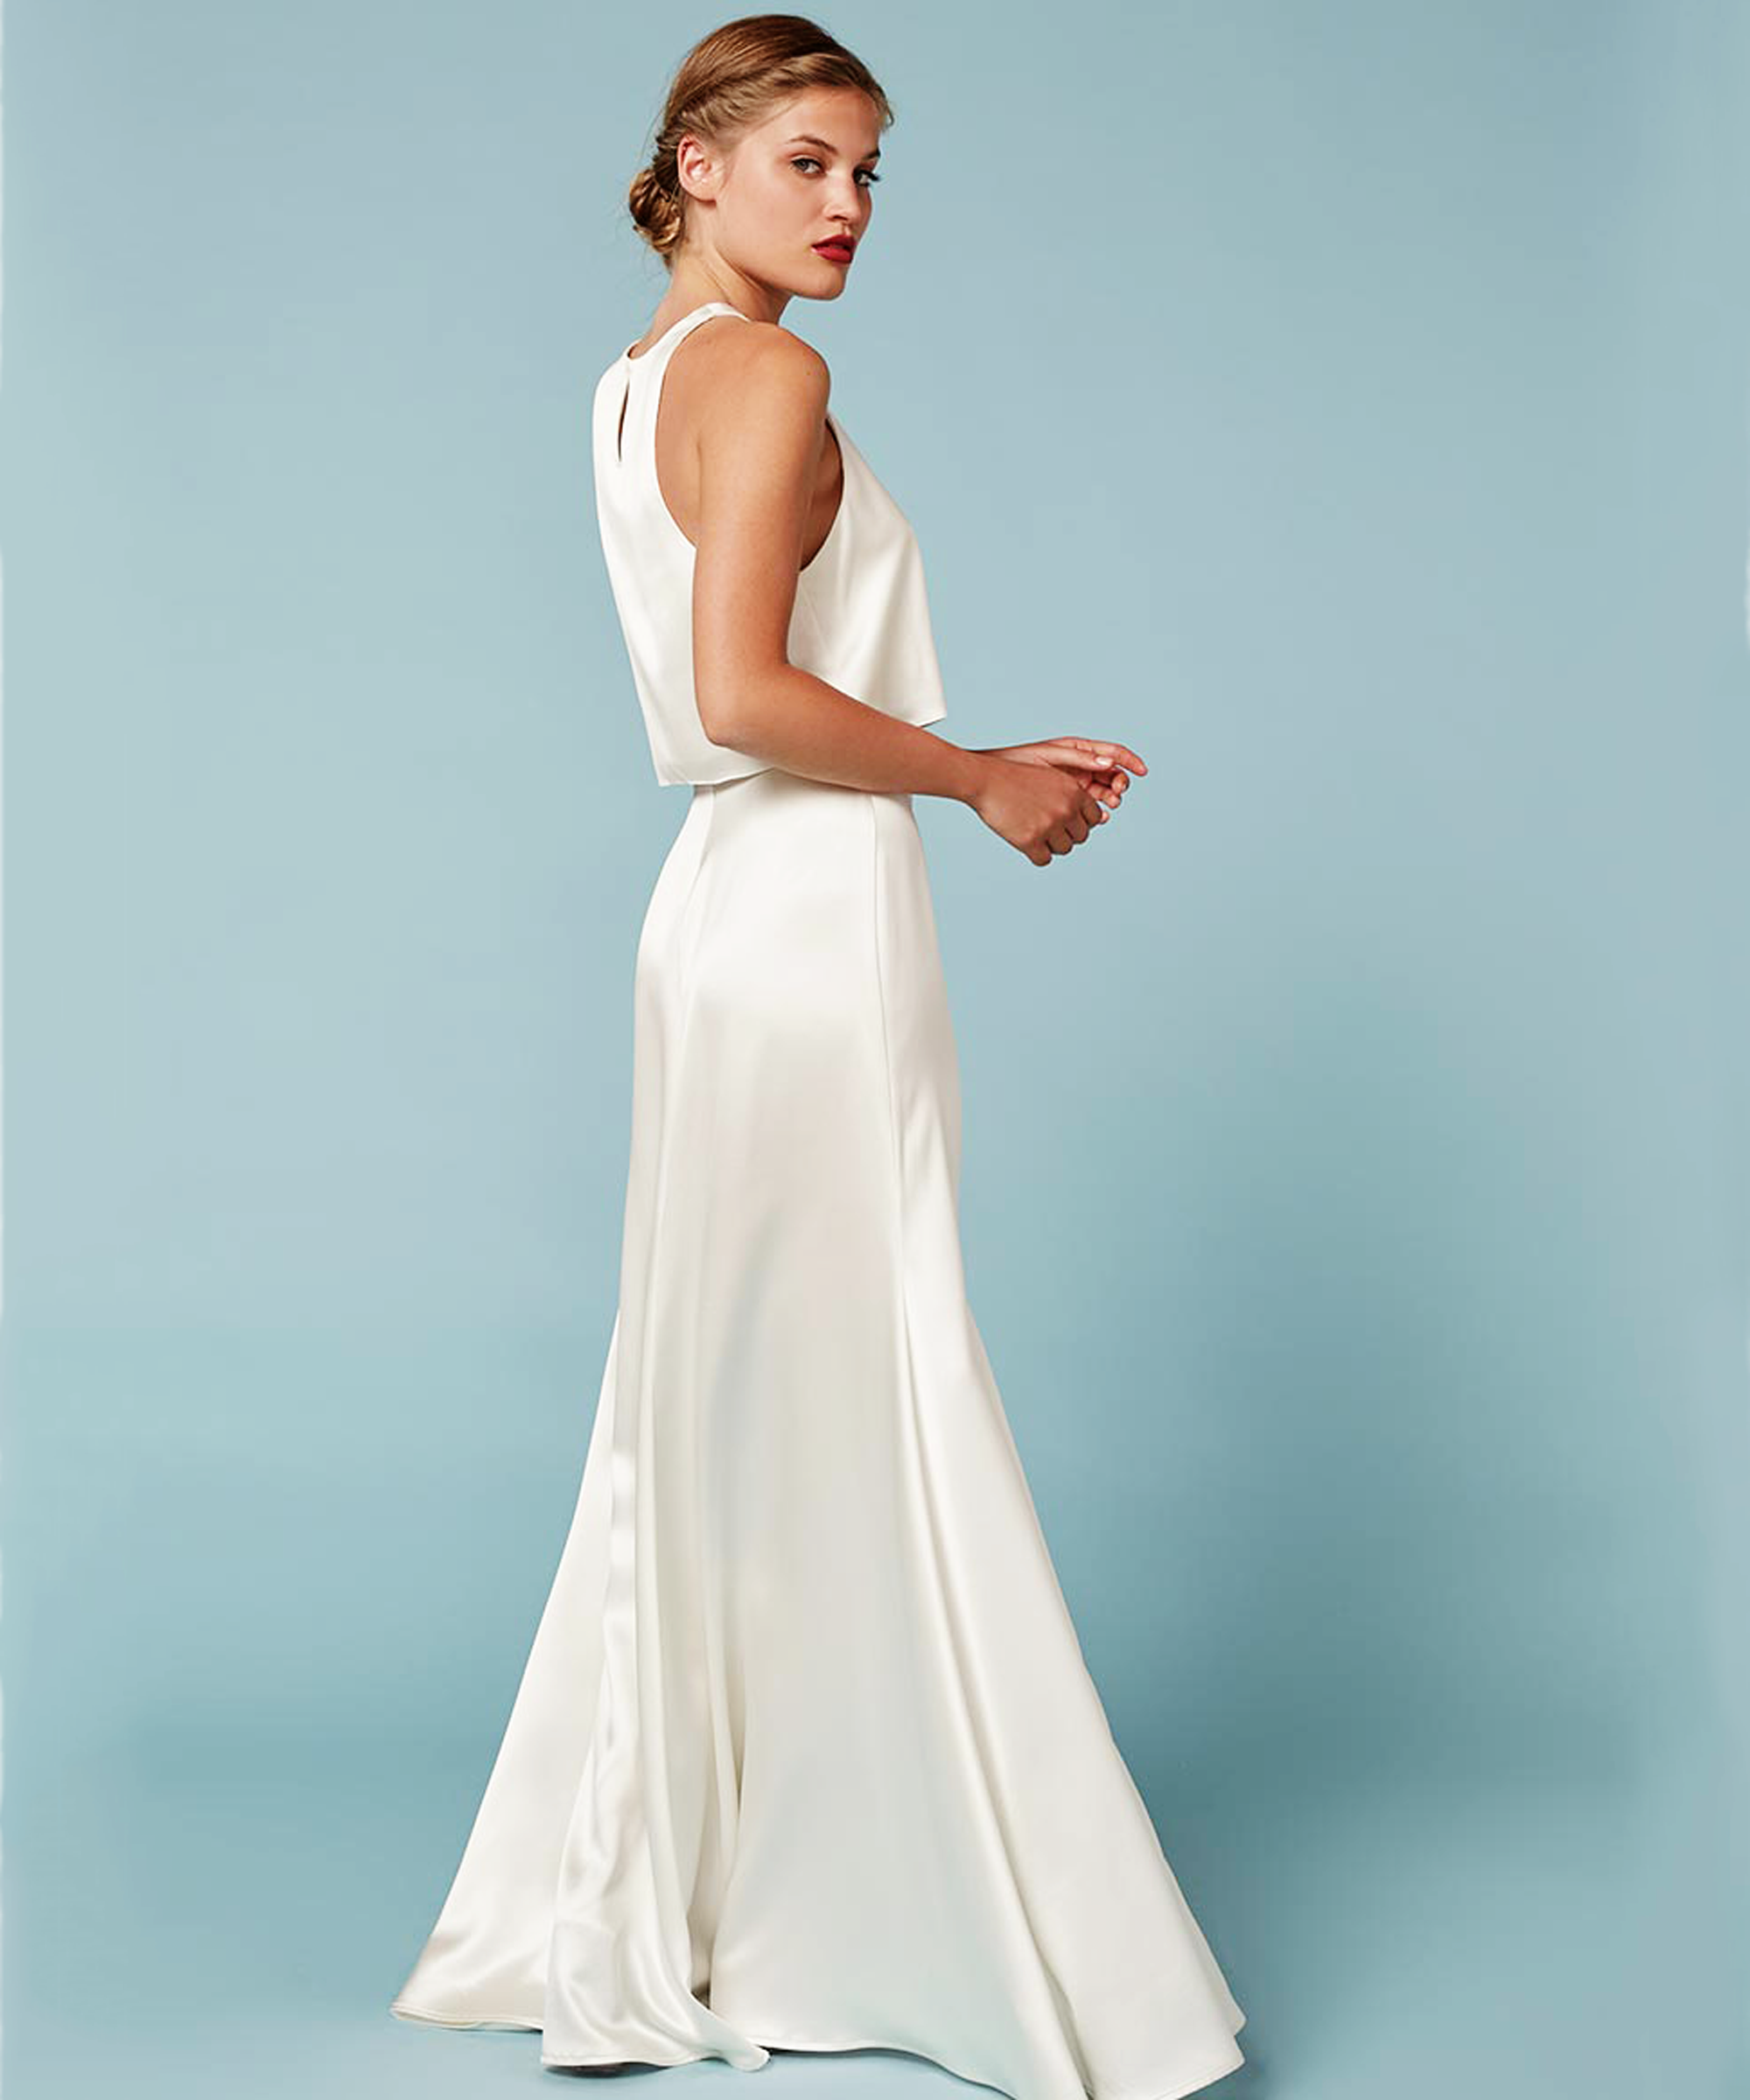 Reformation wedding dress affordable wedding dresses for Shop online wedding dresses